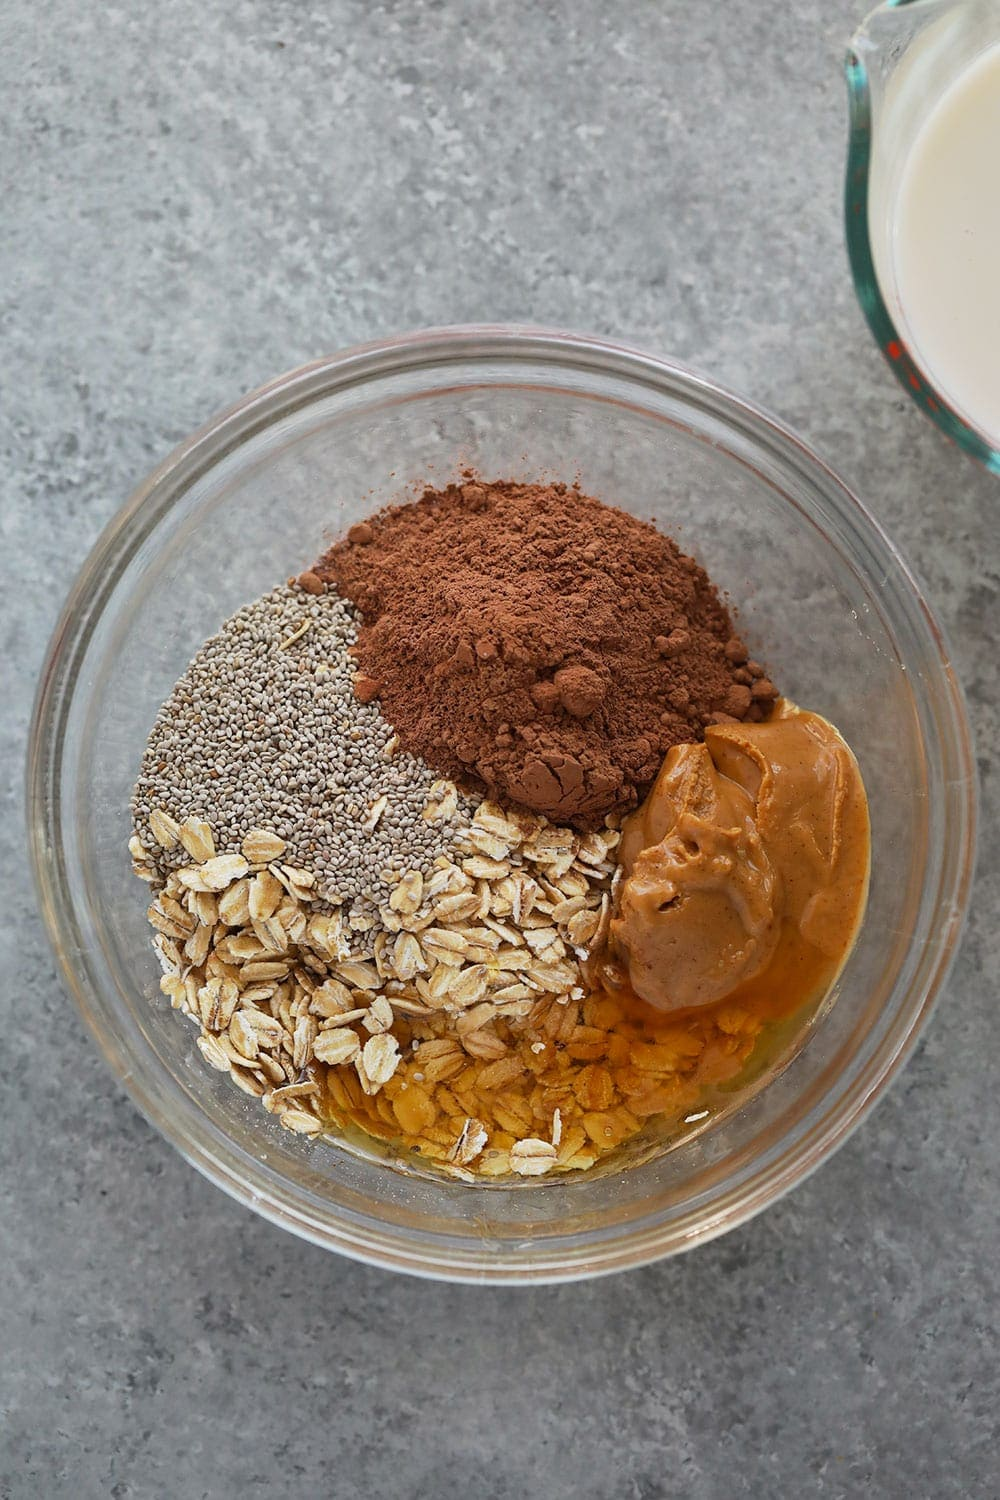 chocolate peanut butter overnight oats ingredients in a bowl